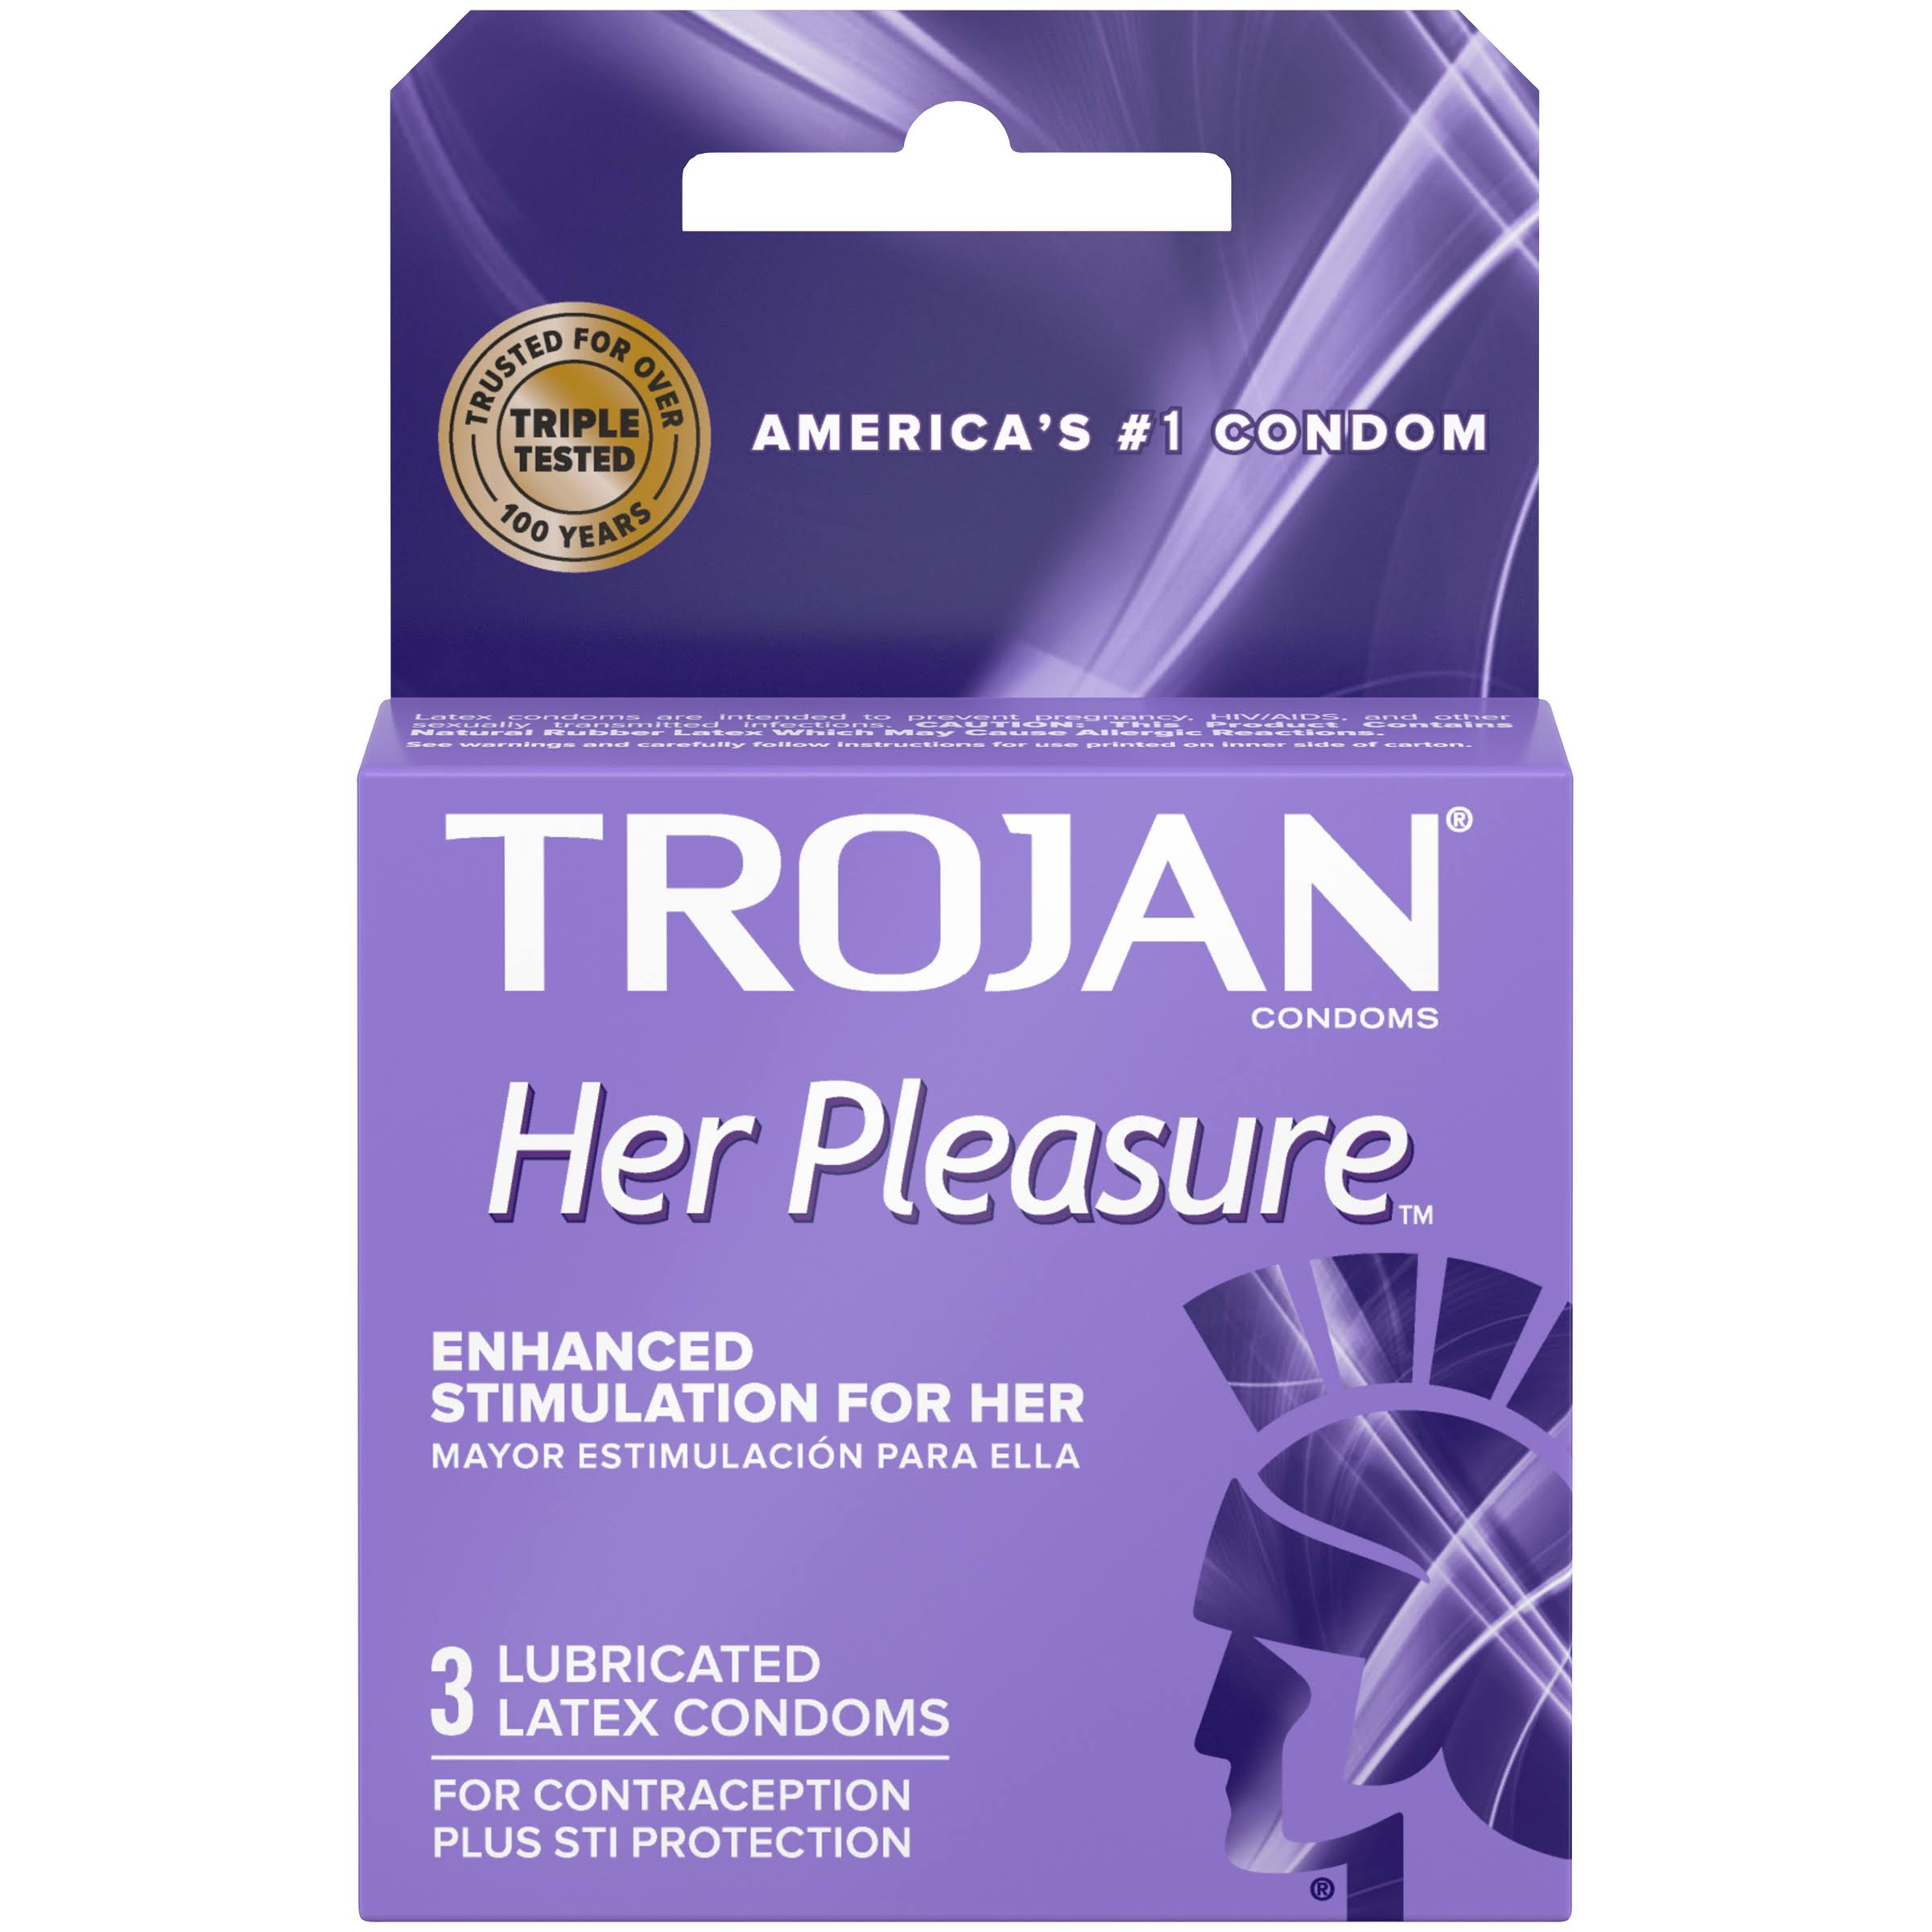 Trojan Her Pleasure Lubricated Condoms